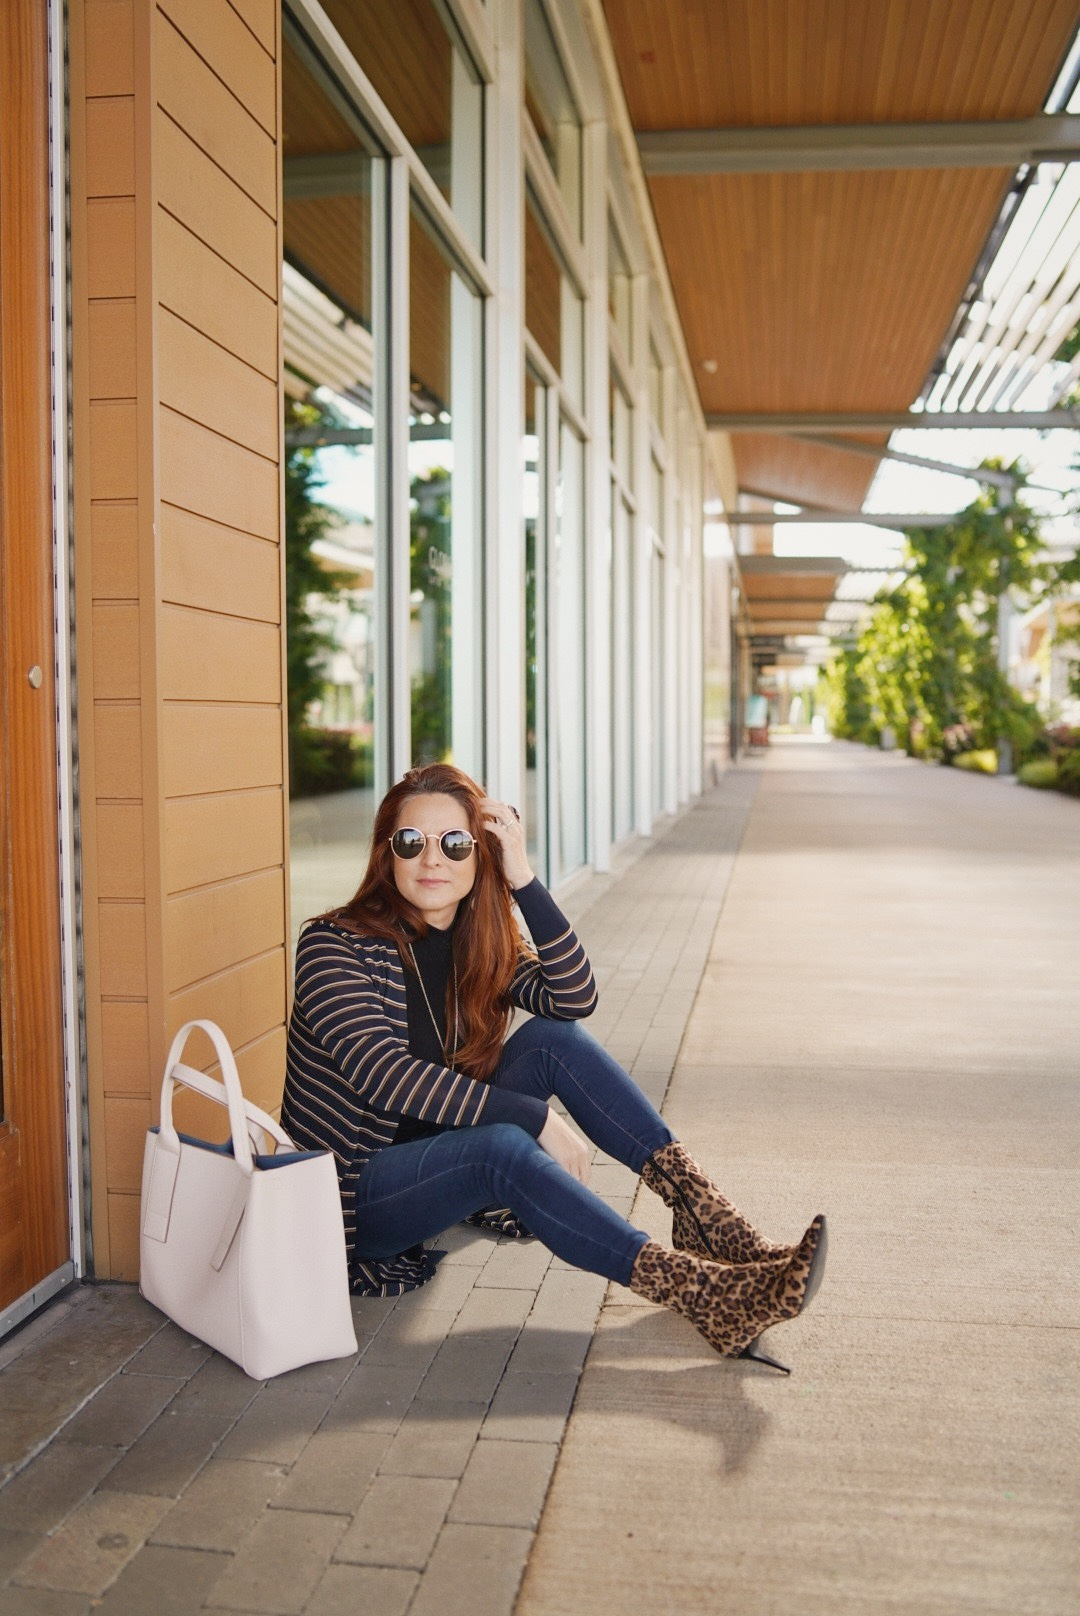 outfit inspiration with leopard print, dsw footwear, large handbags, outfits with stripes